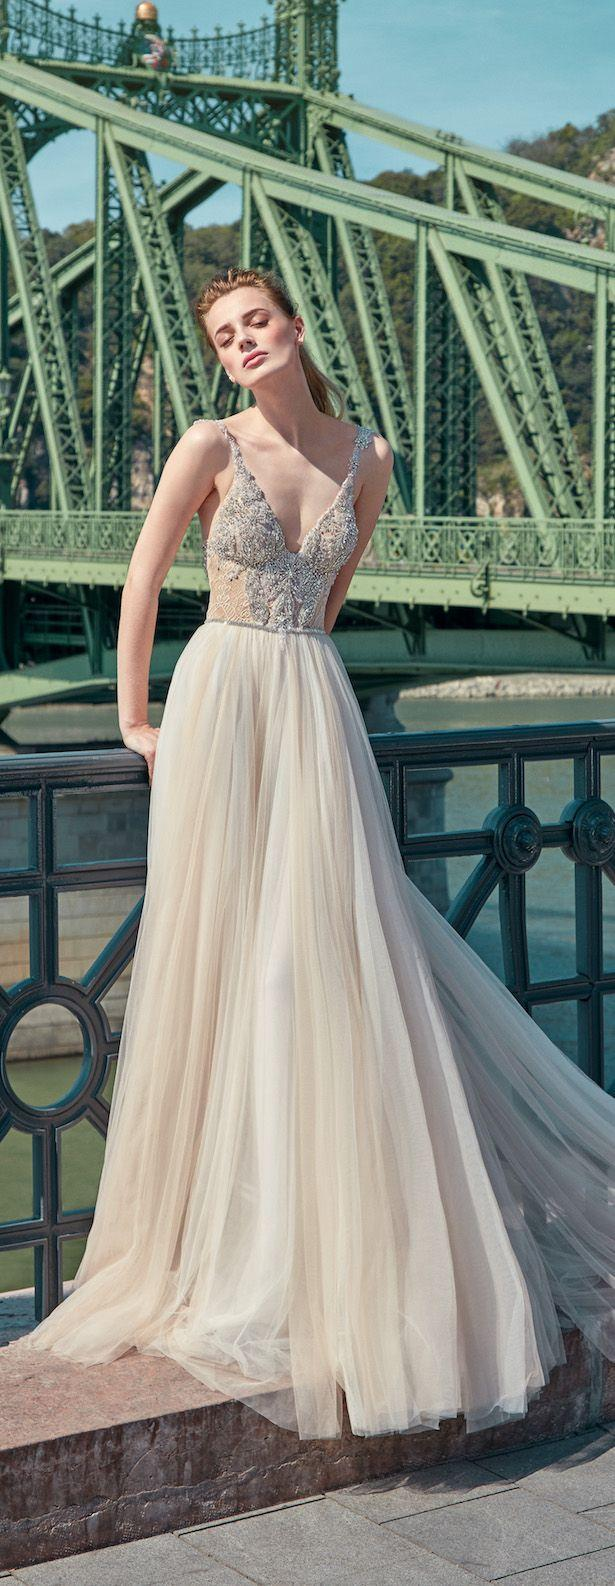 Mariage - Galia Lahav Fall Wedding Dresses Collection 2016